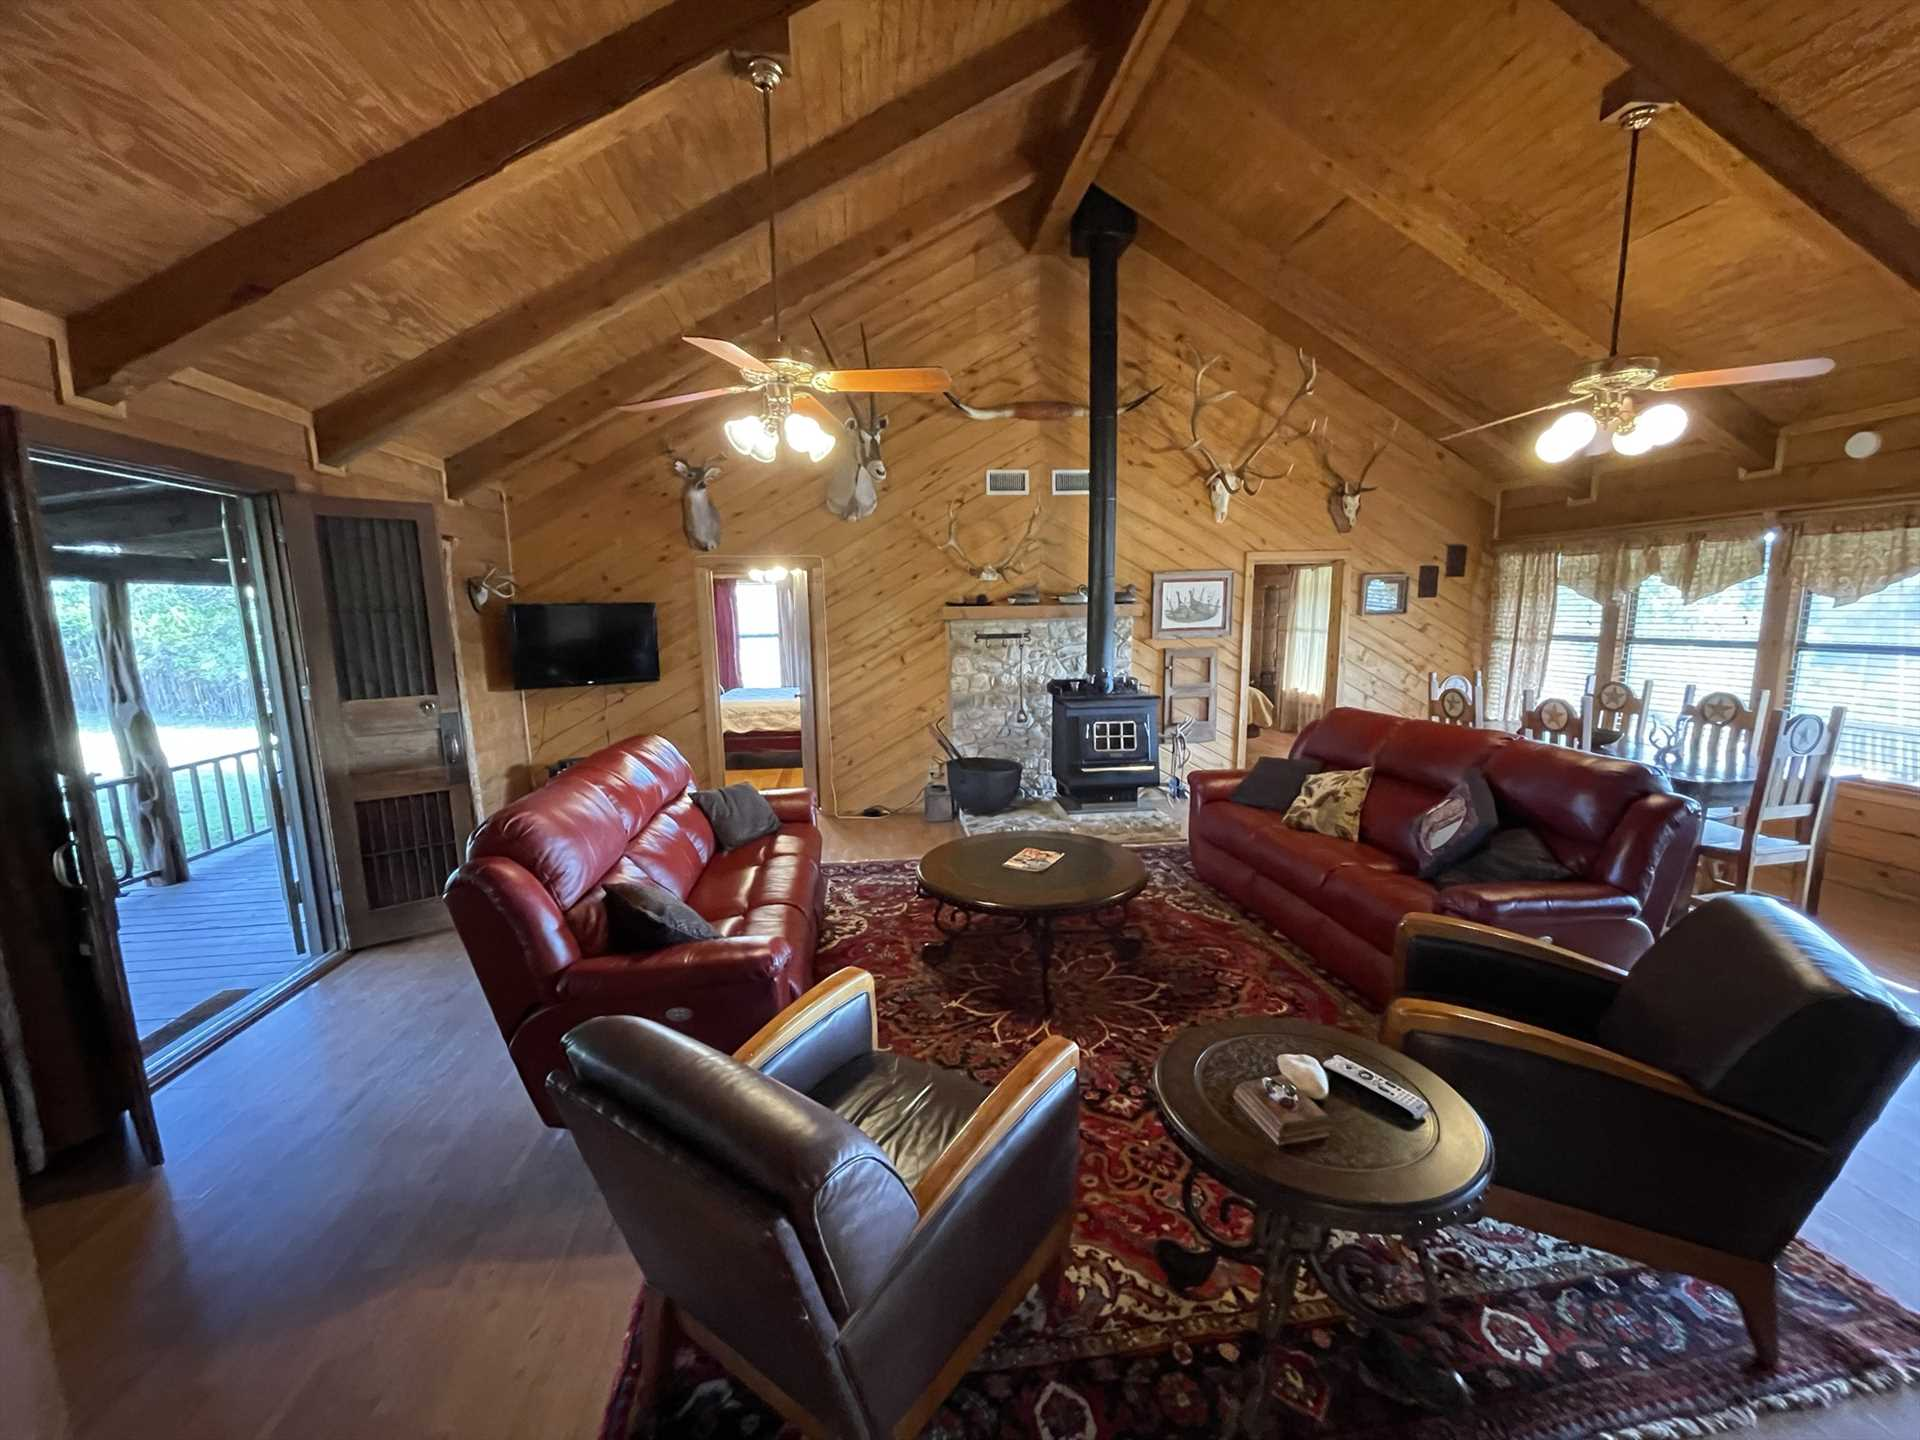 High ceilings, golden woodwork, and tasteful furnishings create a restful living space for everyone at the Lodge.